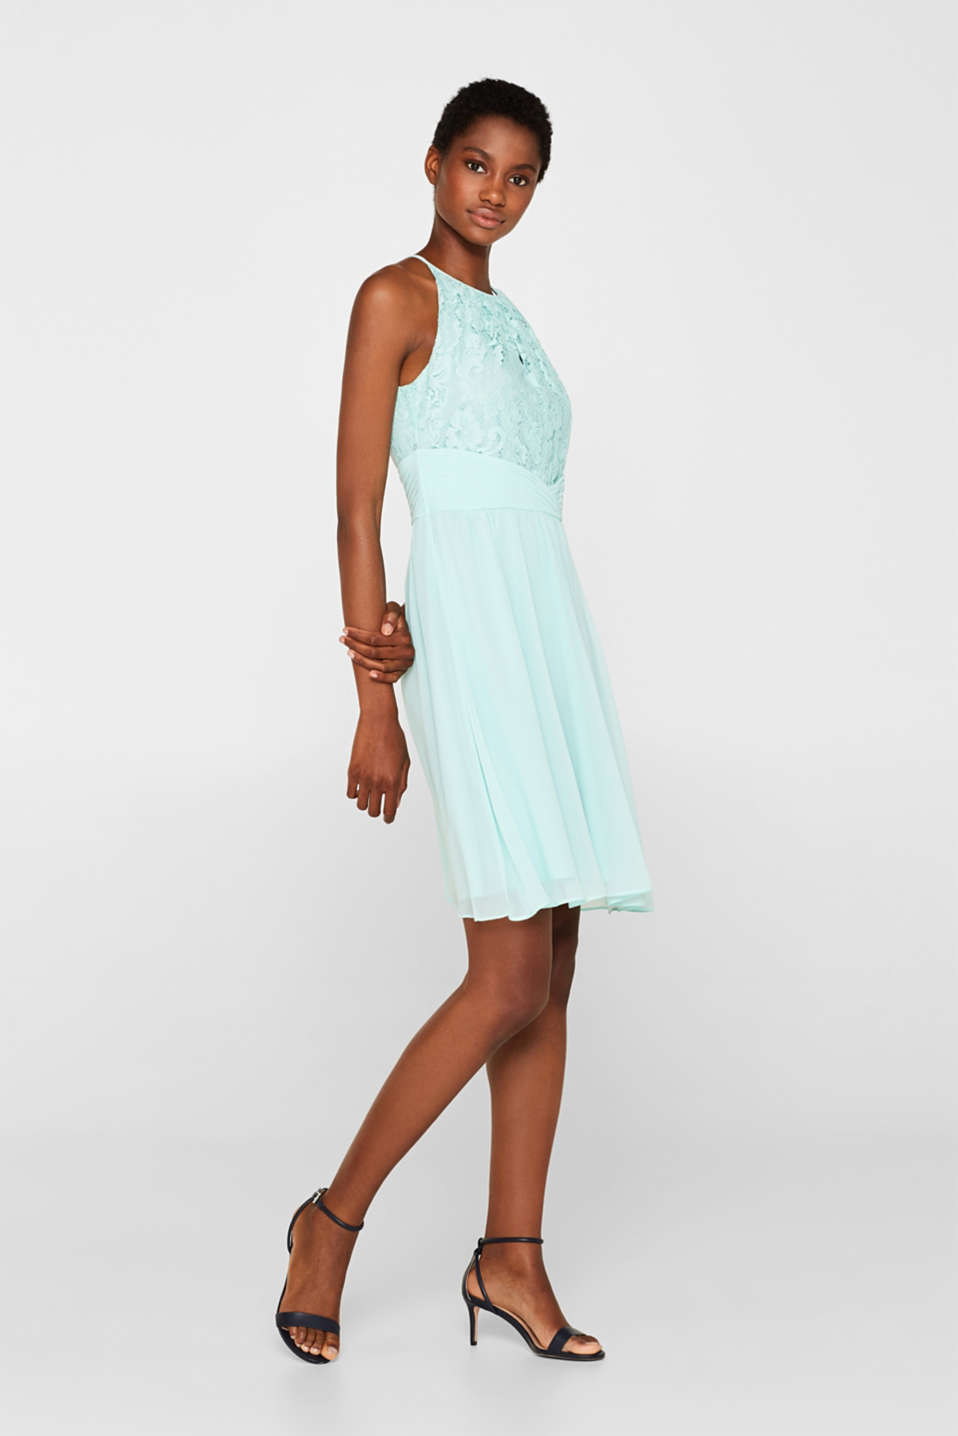 Esprit - Dress in floral lace and chiffon